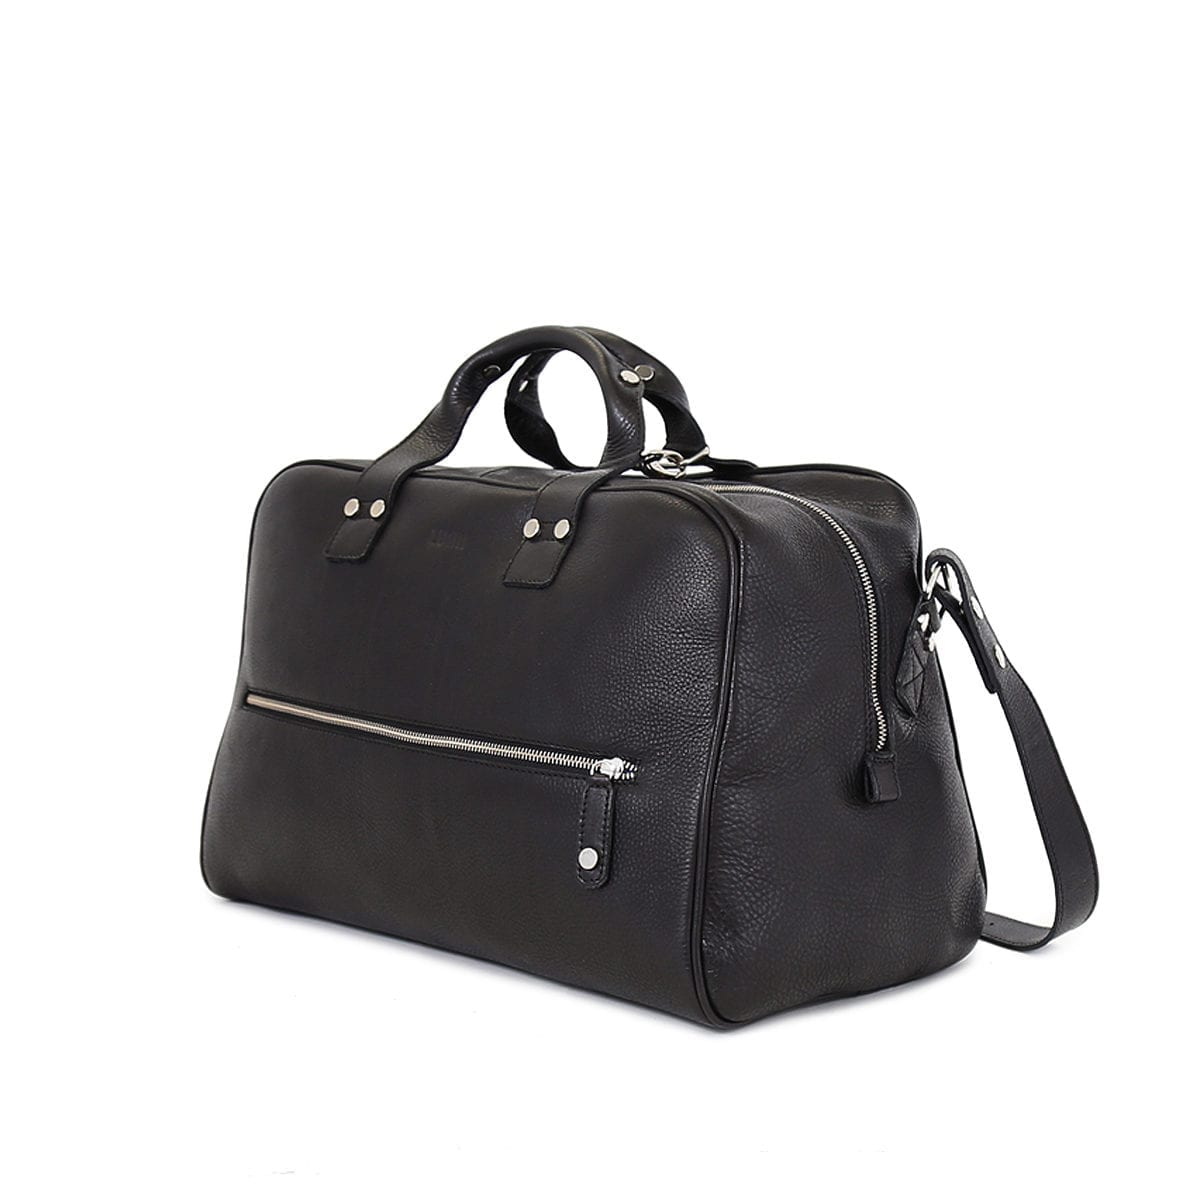 LUMI Kristian Weekender Bag in black. This roomy and handsome weekender bag fits all you need for a weekend away. Also fits your workout essentials.